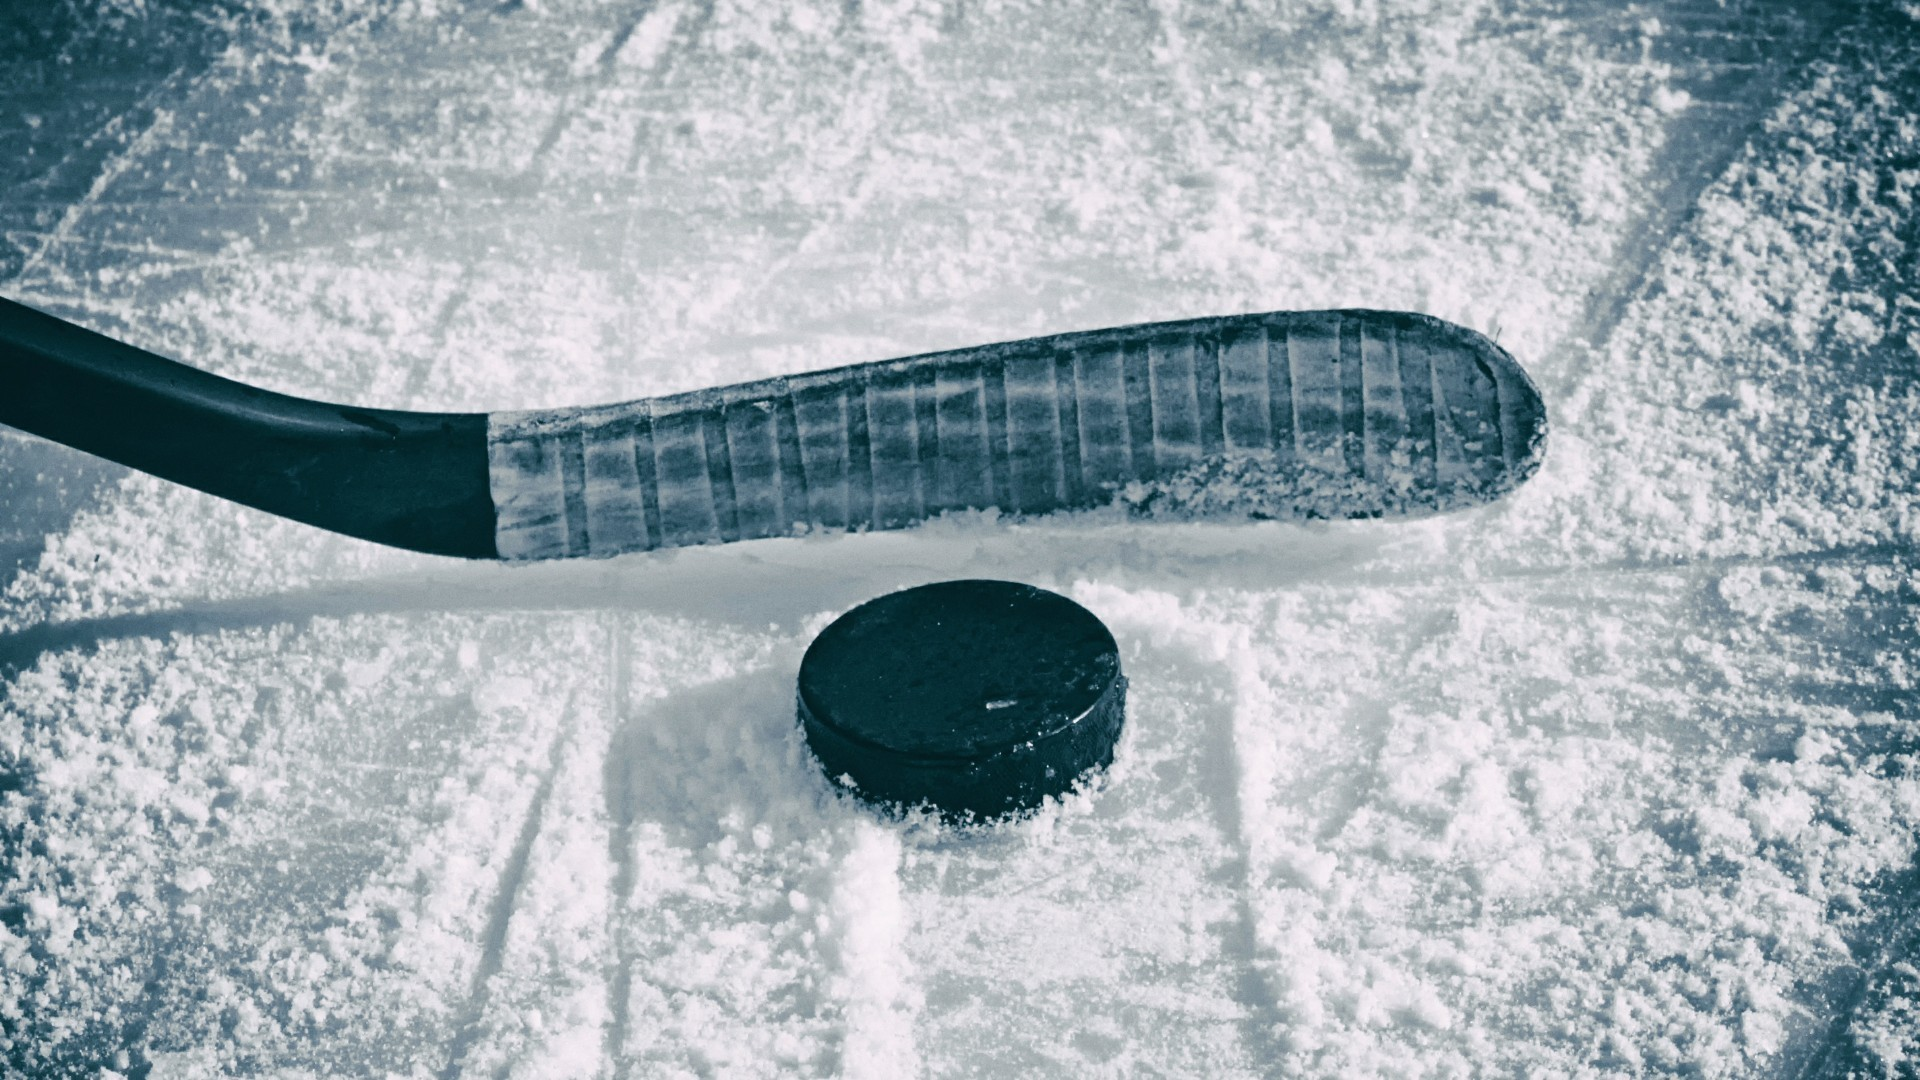 download Cool Hockey Backgrounds 75 images [1920x1080] for 1920x1080